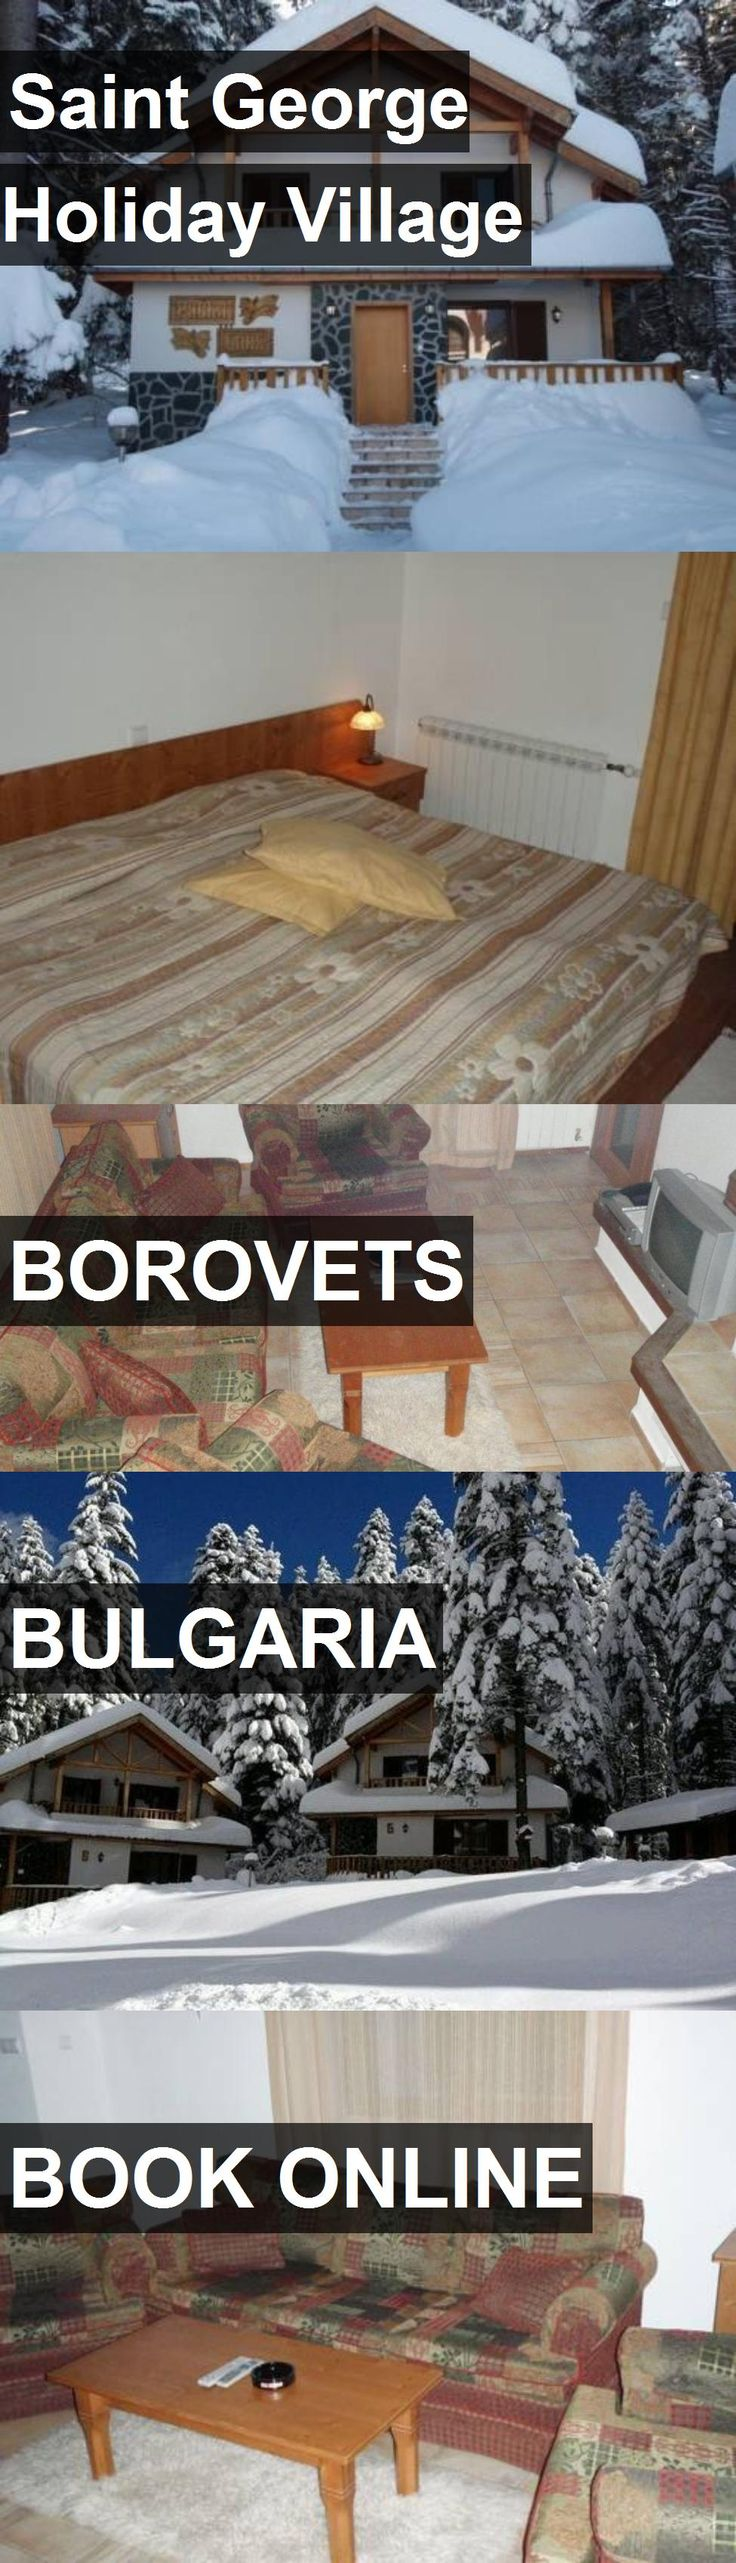 Hotel Saint George Holiday Village in Borovets, Bulgaria. For more information, photos, reviews and best prices please follow the link. #Bulgaria #Borovets #SaintGeorgeHolidayVillage #hotel #travel #vacation